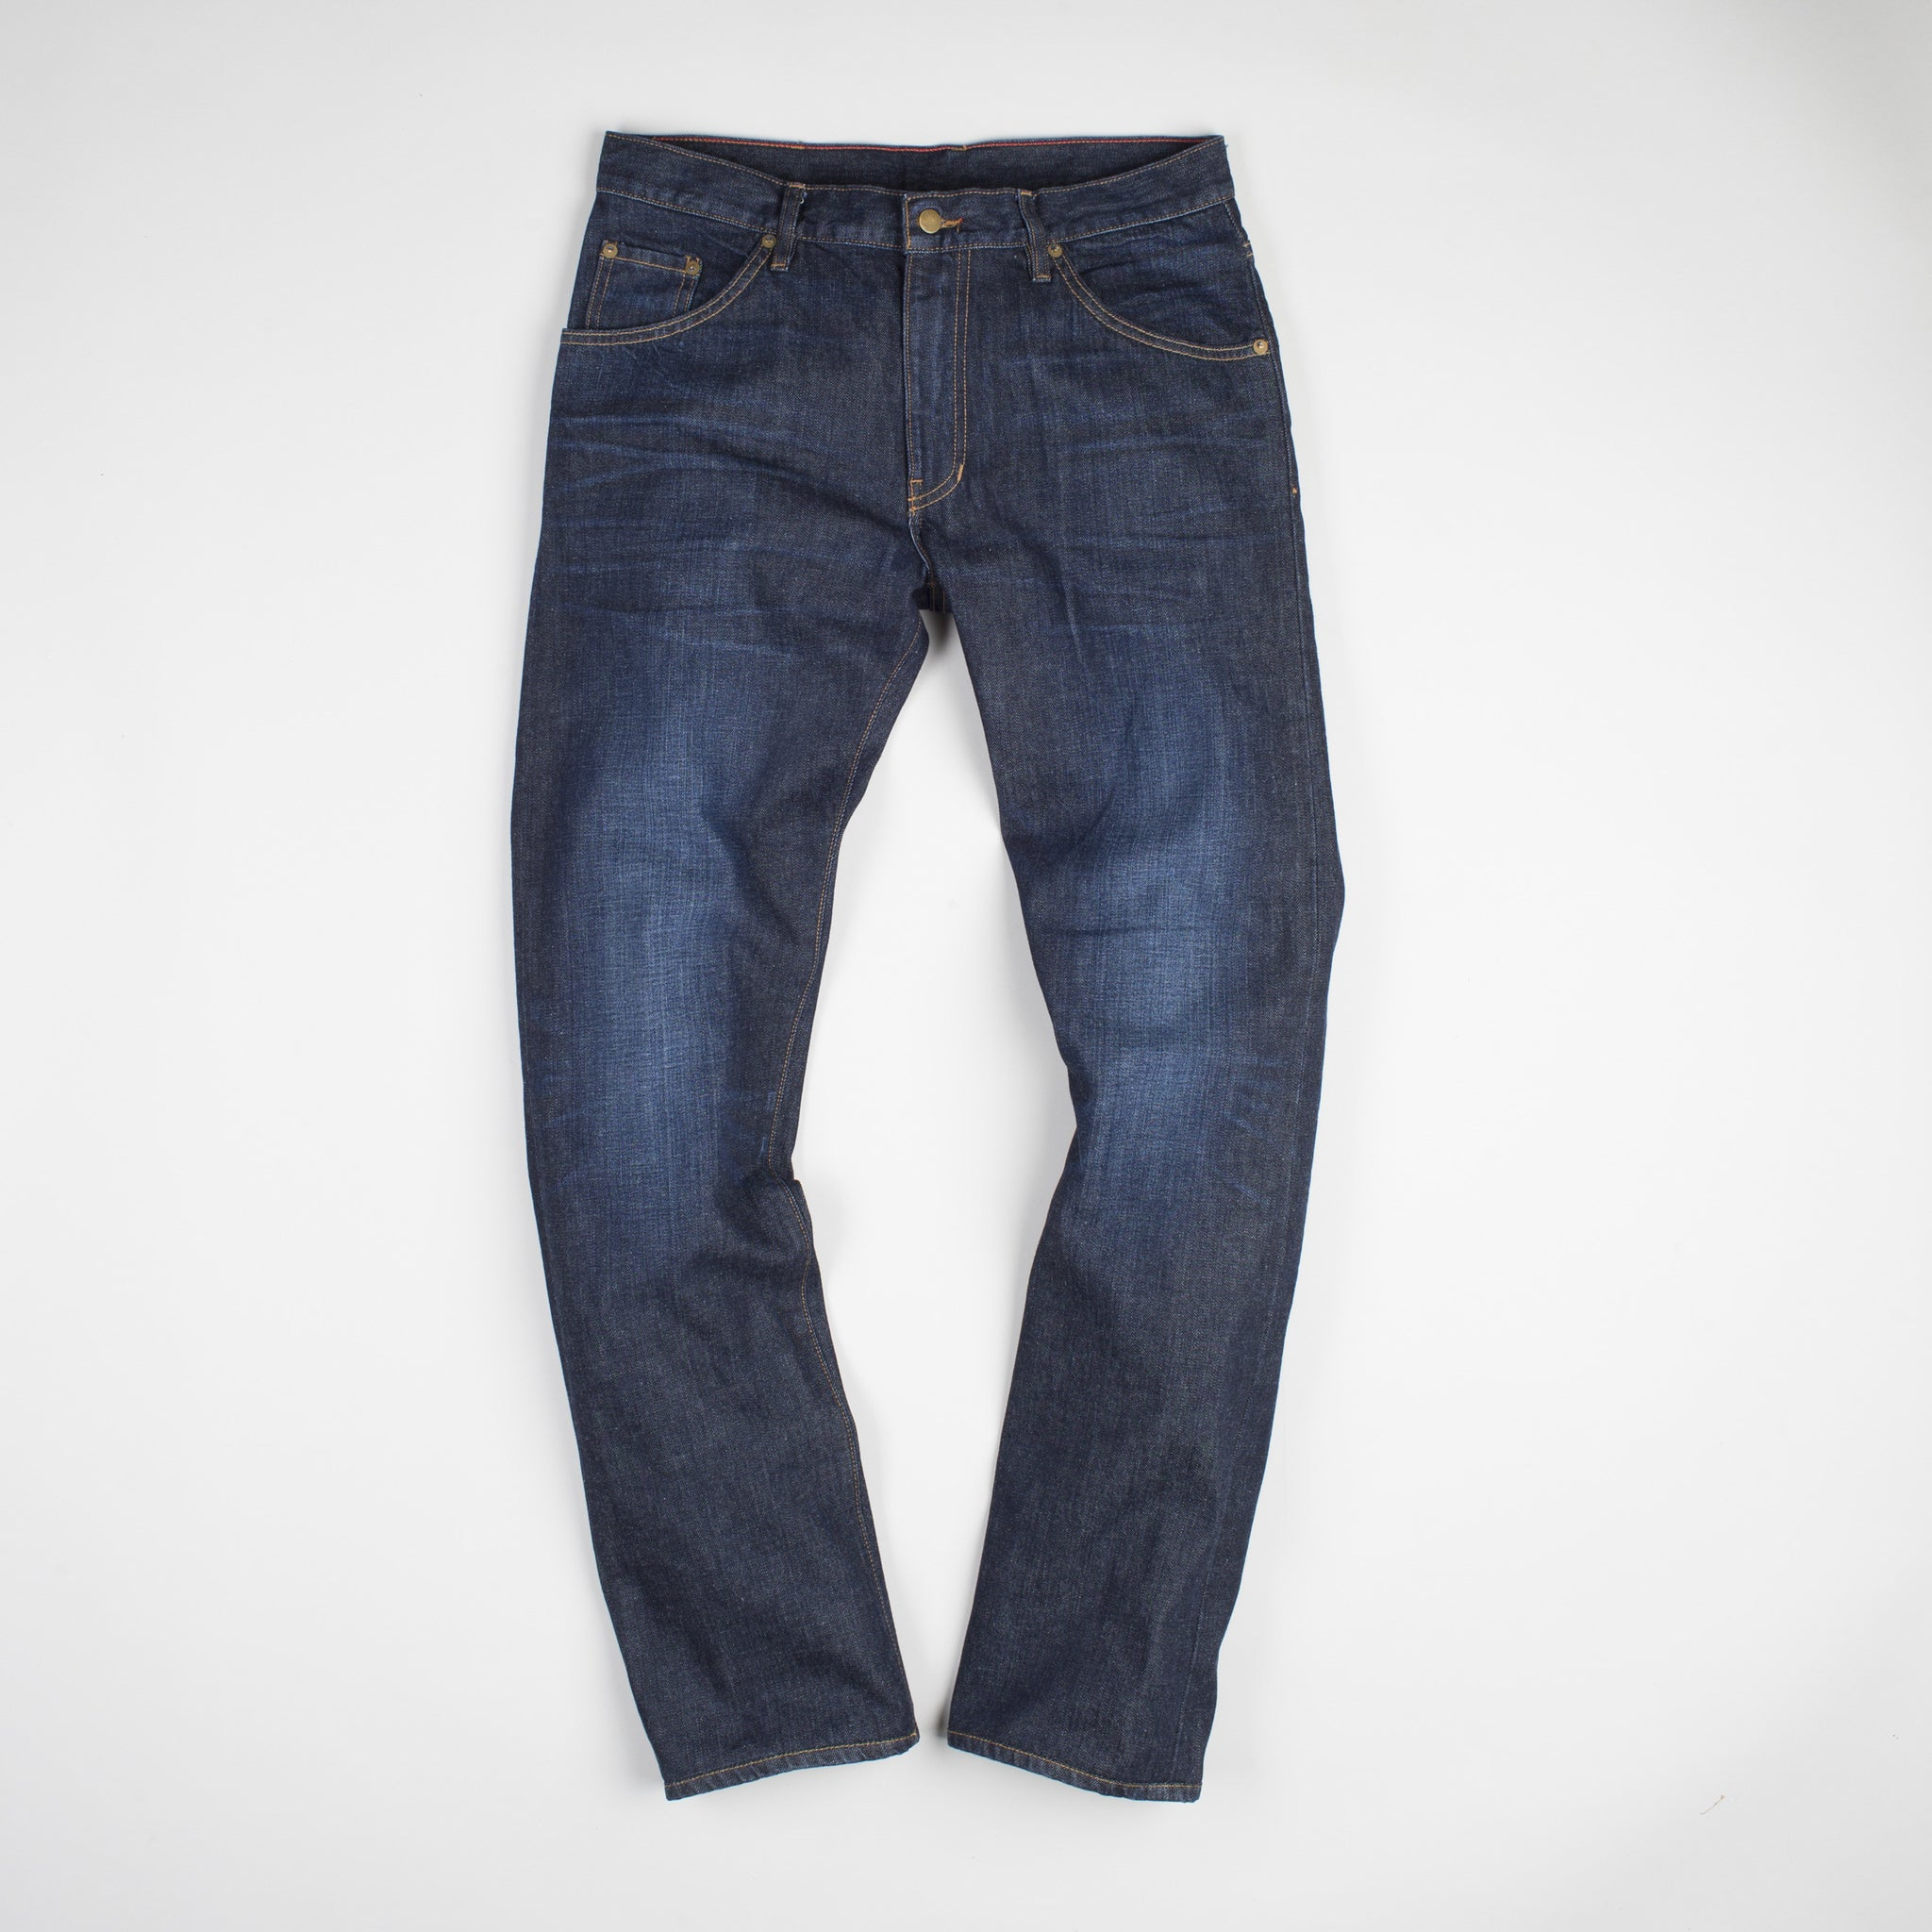 angle: general  Raleigh Denim Workshop Jones thin fit in a general wash, front view